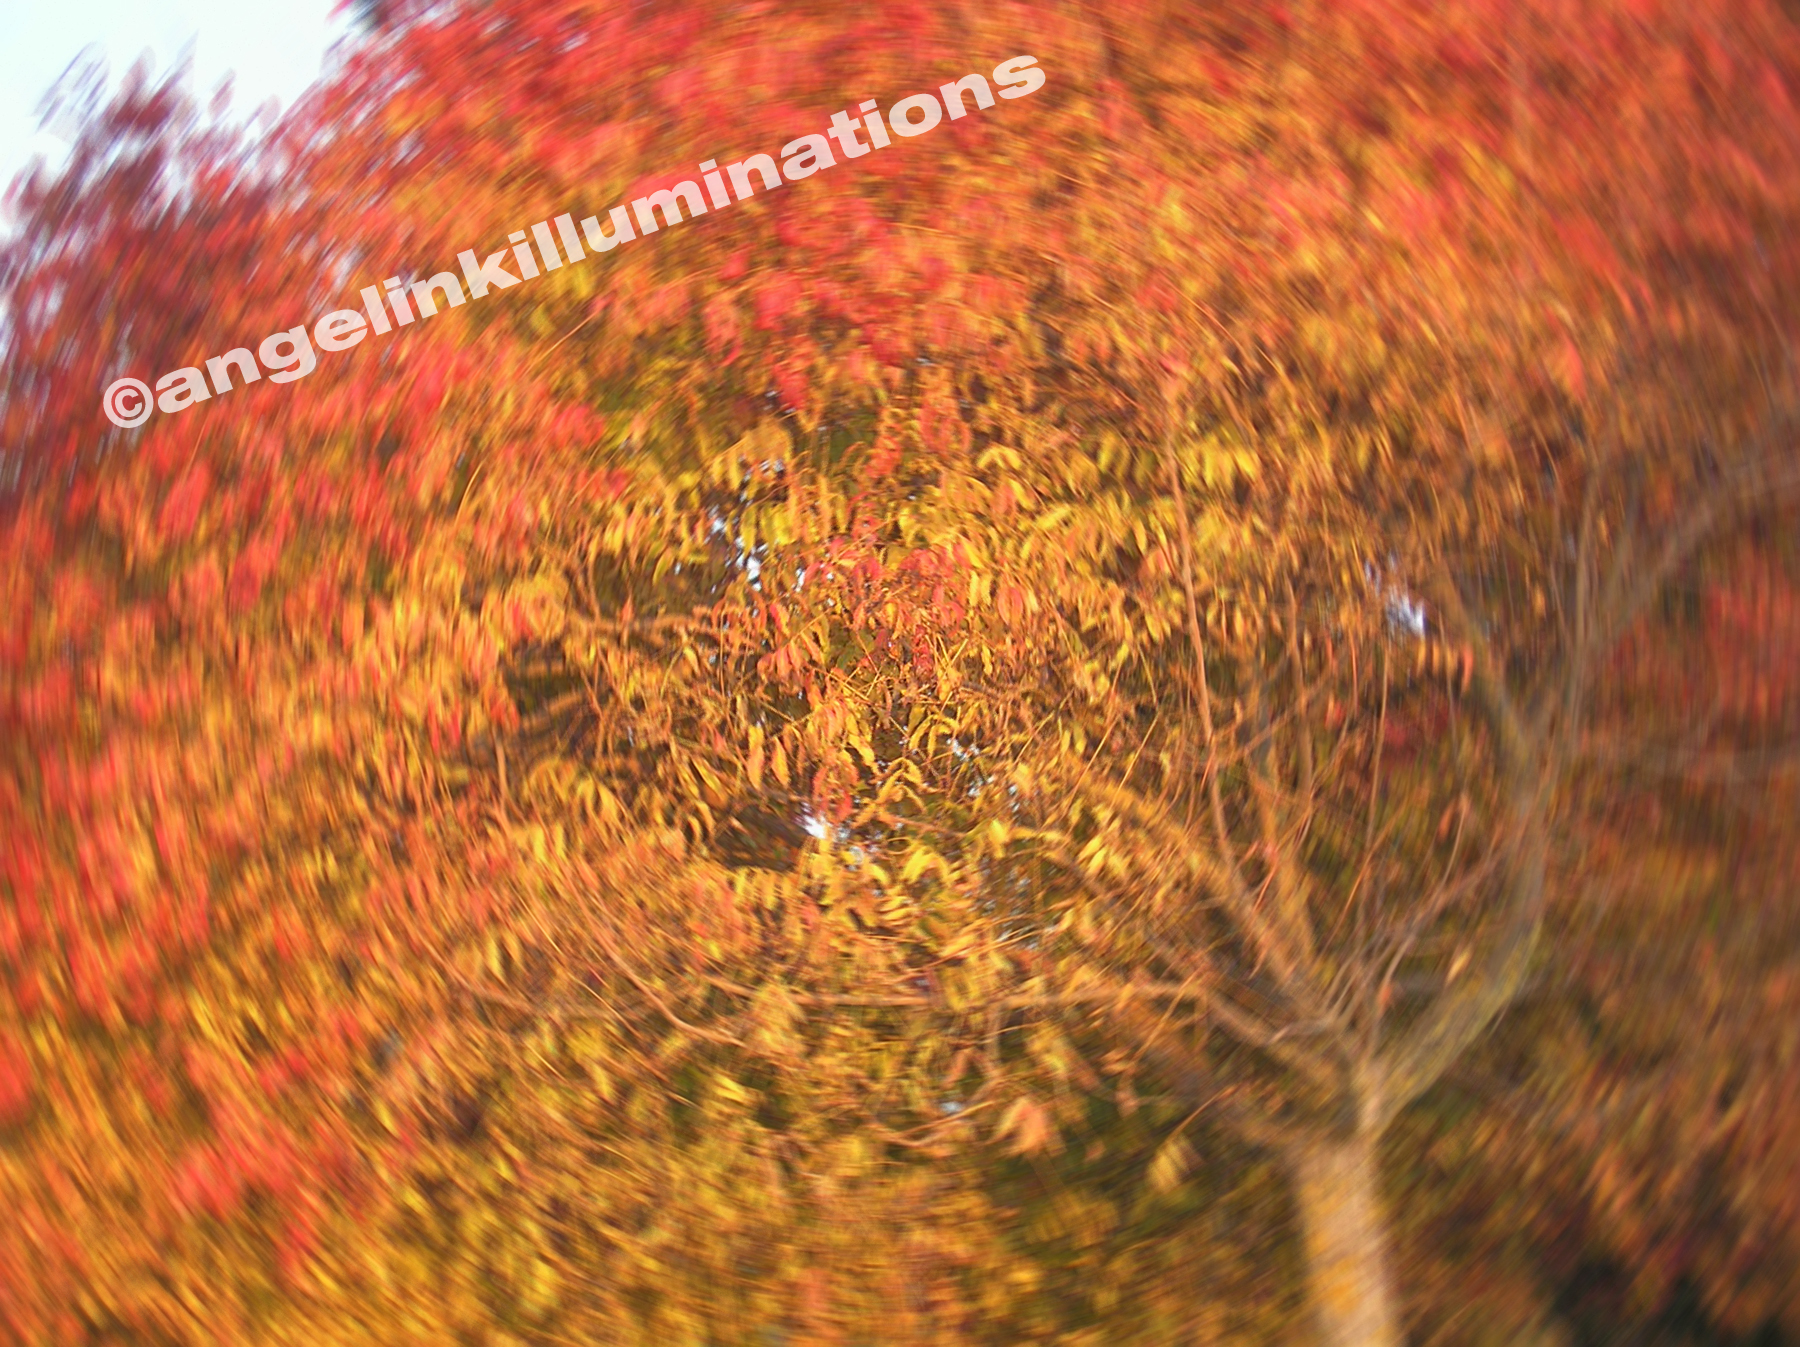 Fall_20tree_20in_20motion_original